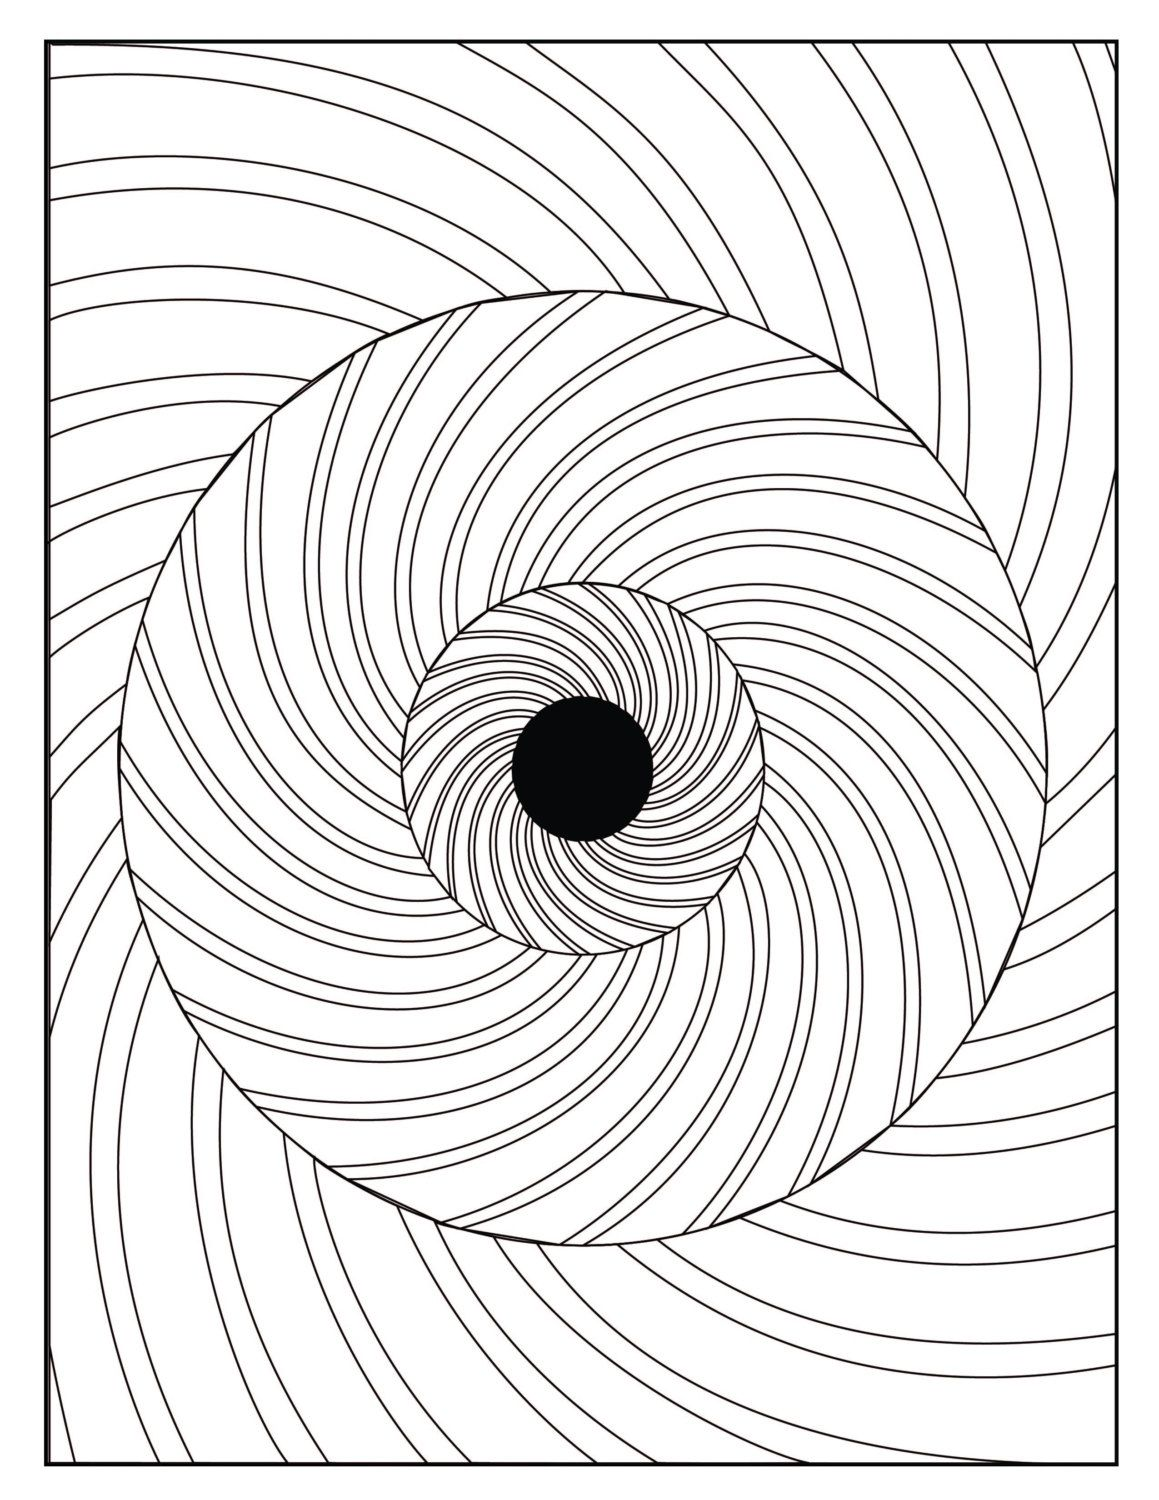 Digital Optical Illusion 3 Coloring Page By Graphicsbyshenessa Abstract Coloring Pages Pattern Coloring Pages Coloring Pages